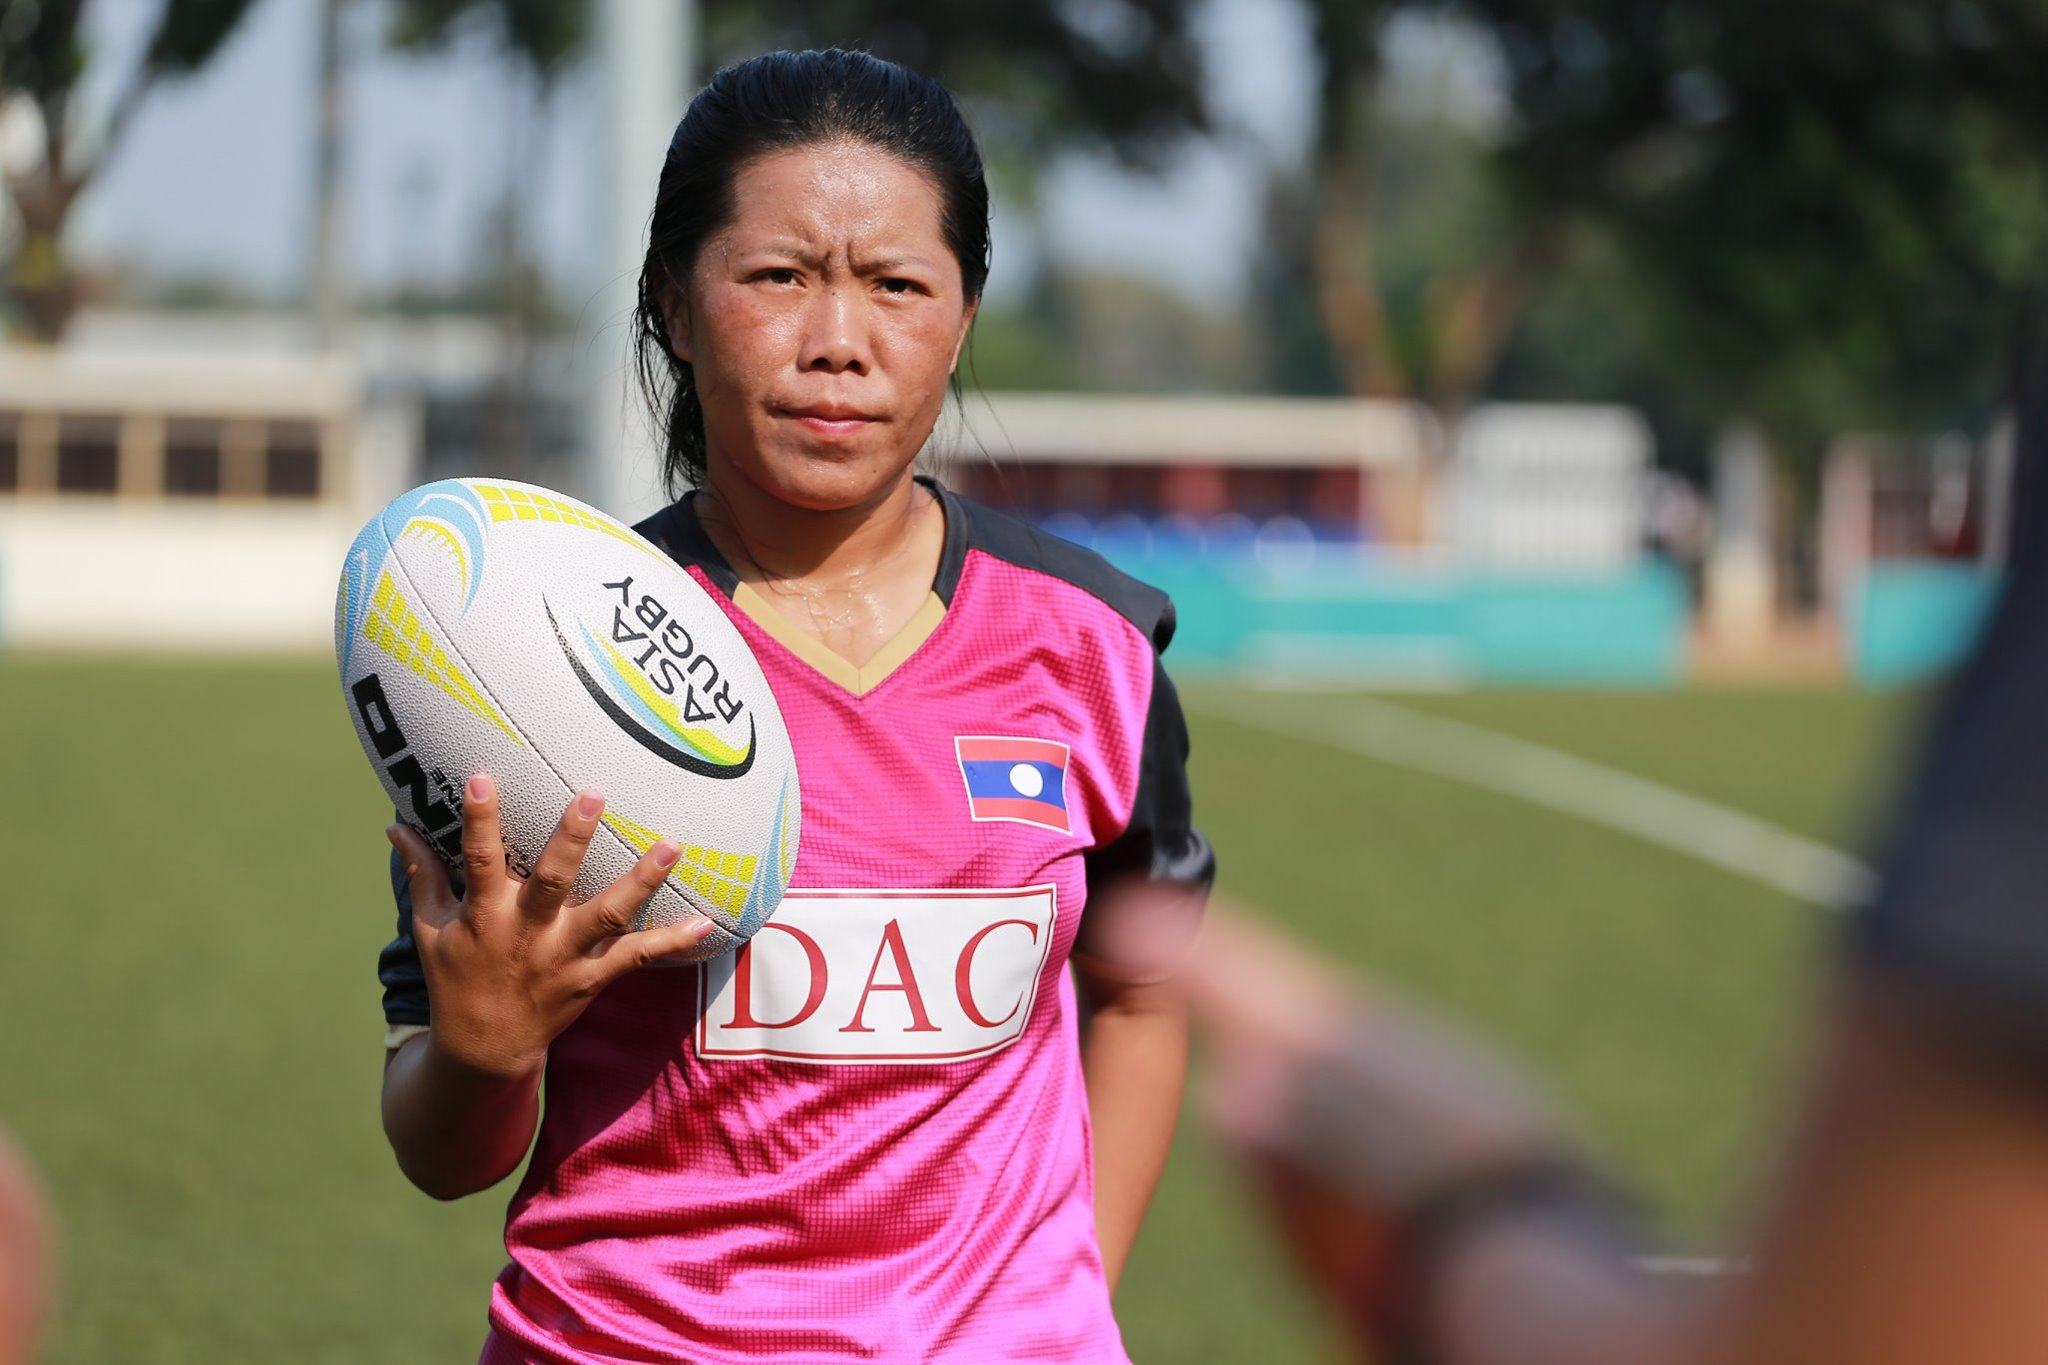 One of BBC's 100 Women 2018, as well as Forbes 30 under 30, Lao Khang works at the Lao Rugby Federation to expand rugby in Laos. Lao Khang coordinates over 50 Coaches and more than 100 teams in her home province of Xieng Khouang.